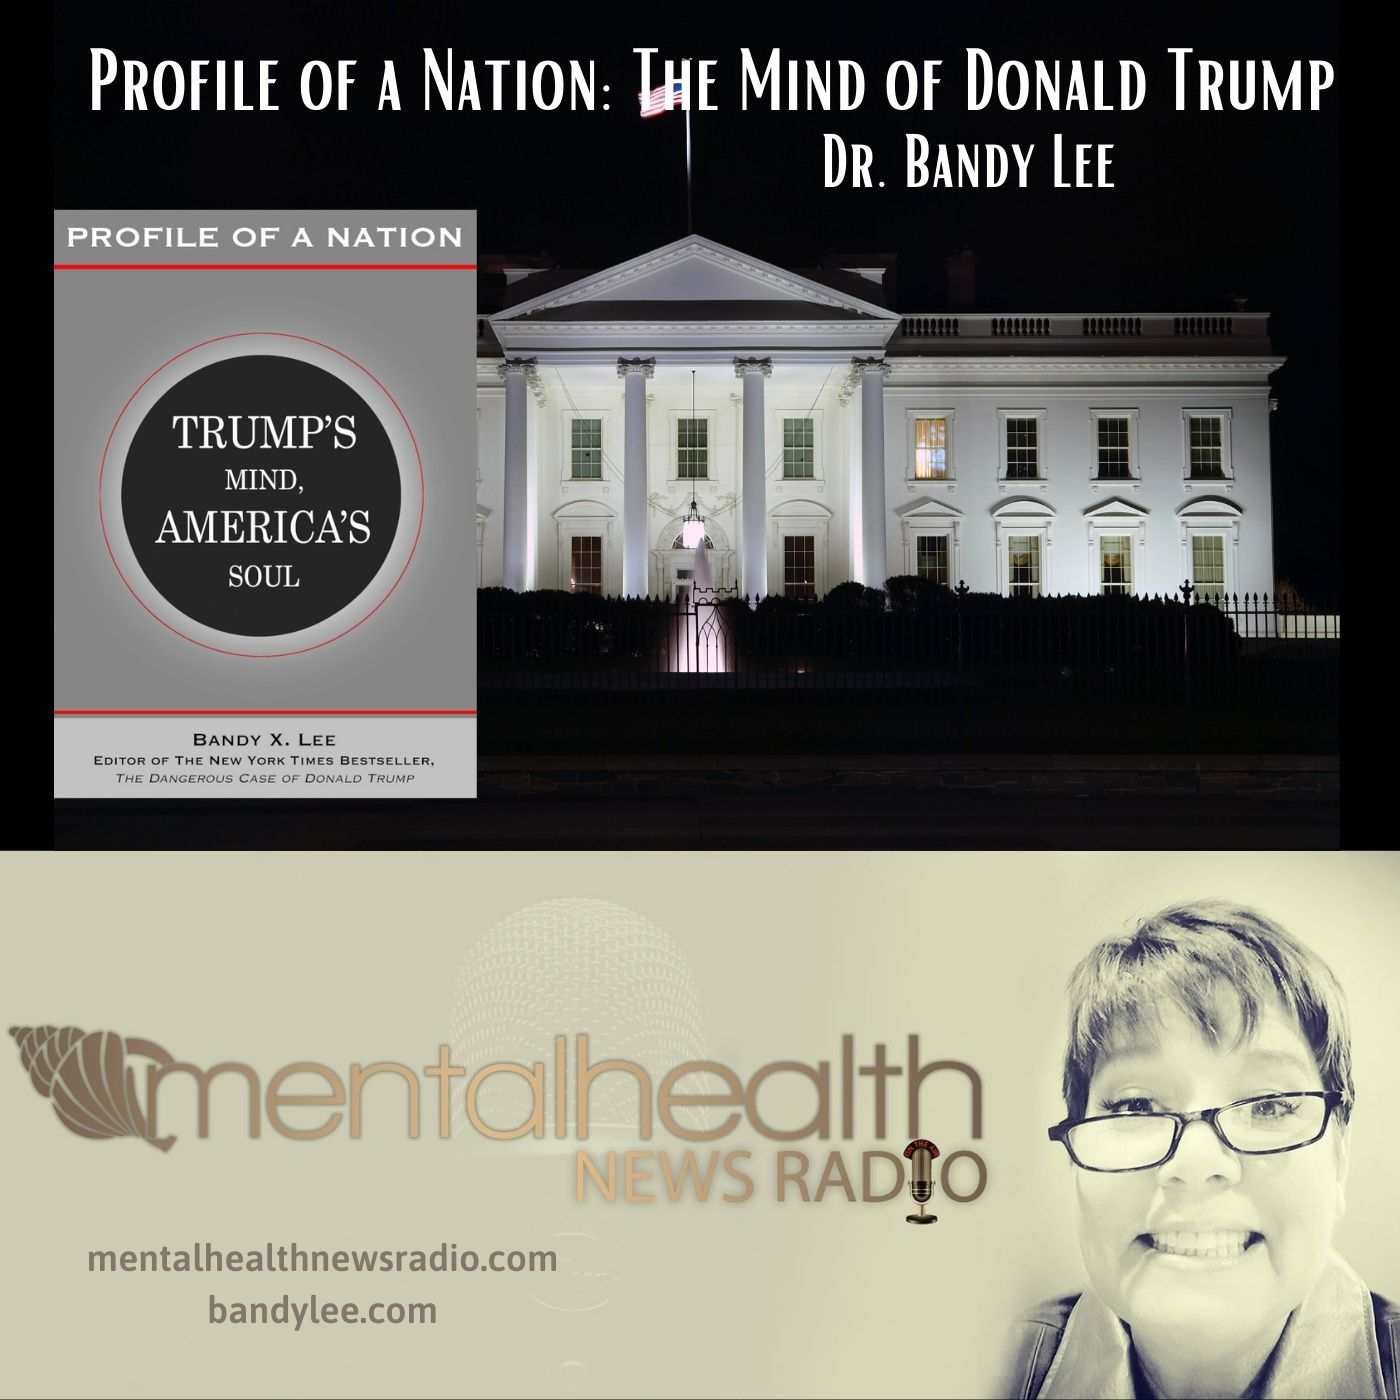 Mental Health News Radio - Profile of a Nation: The Mind of Donald Trump